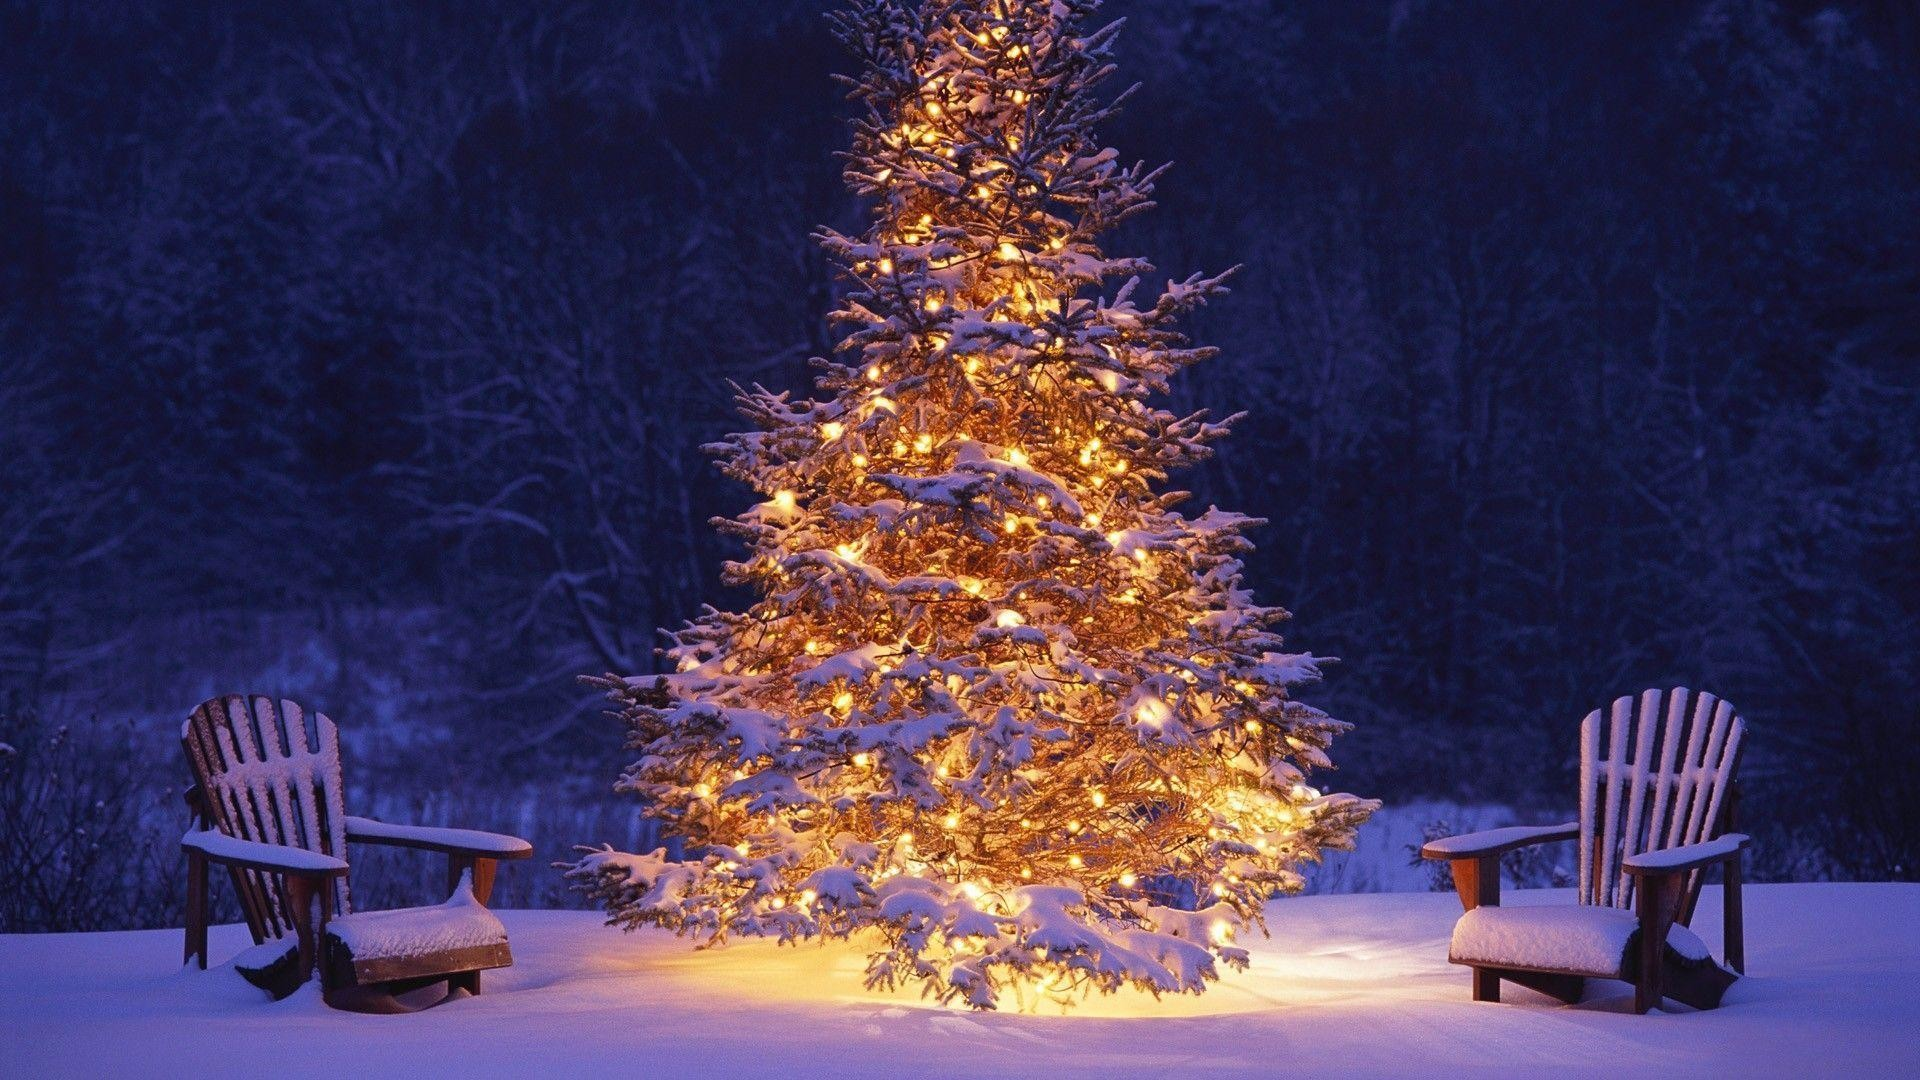 christmas tree background wallpaper (79+ images)